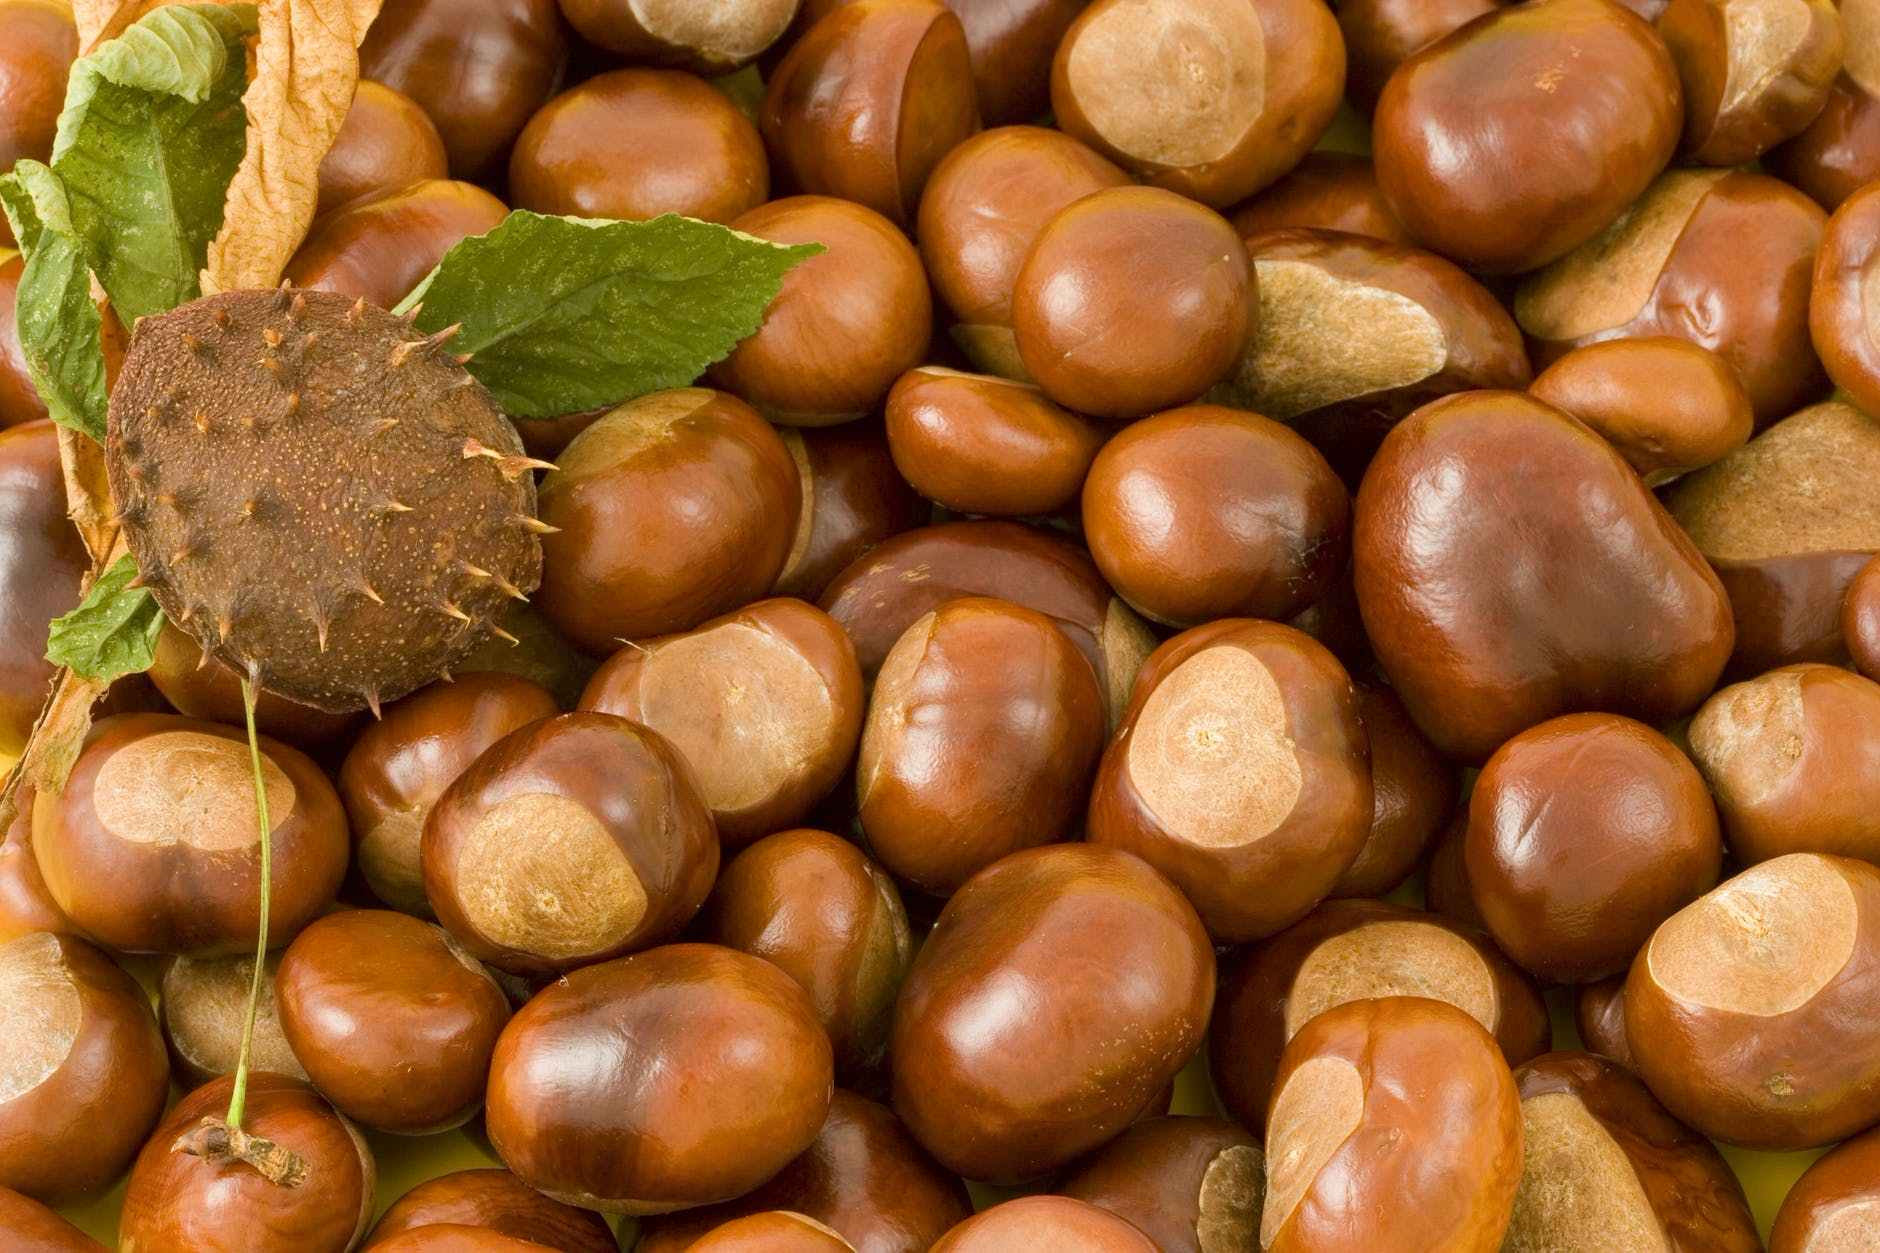 conkers-conker-background-leaves-41948.jpeg